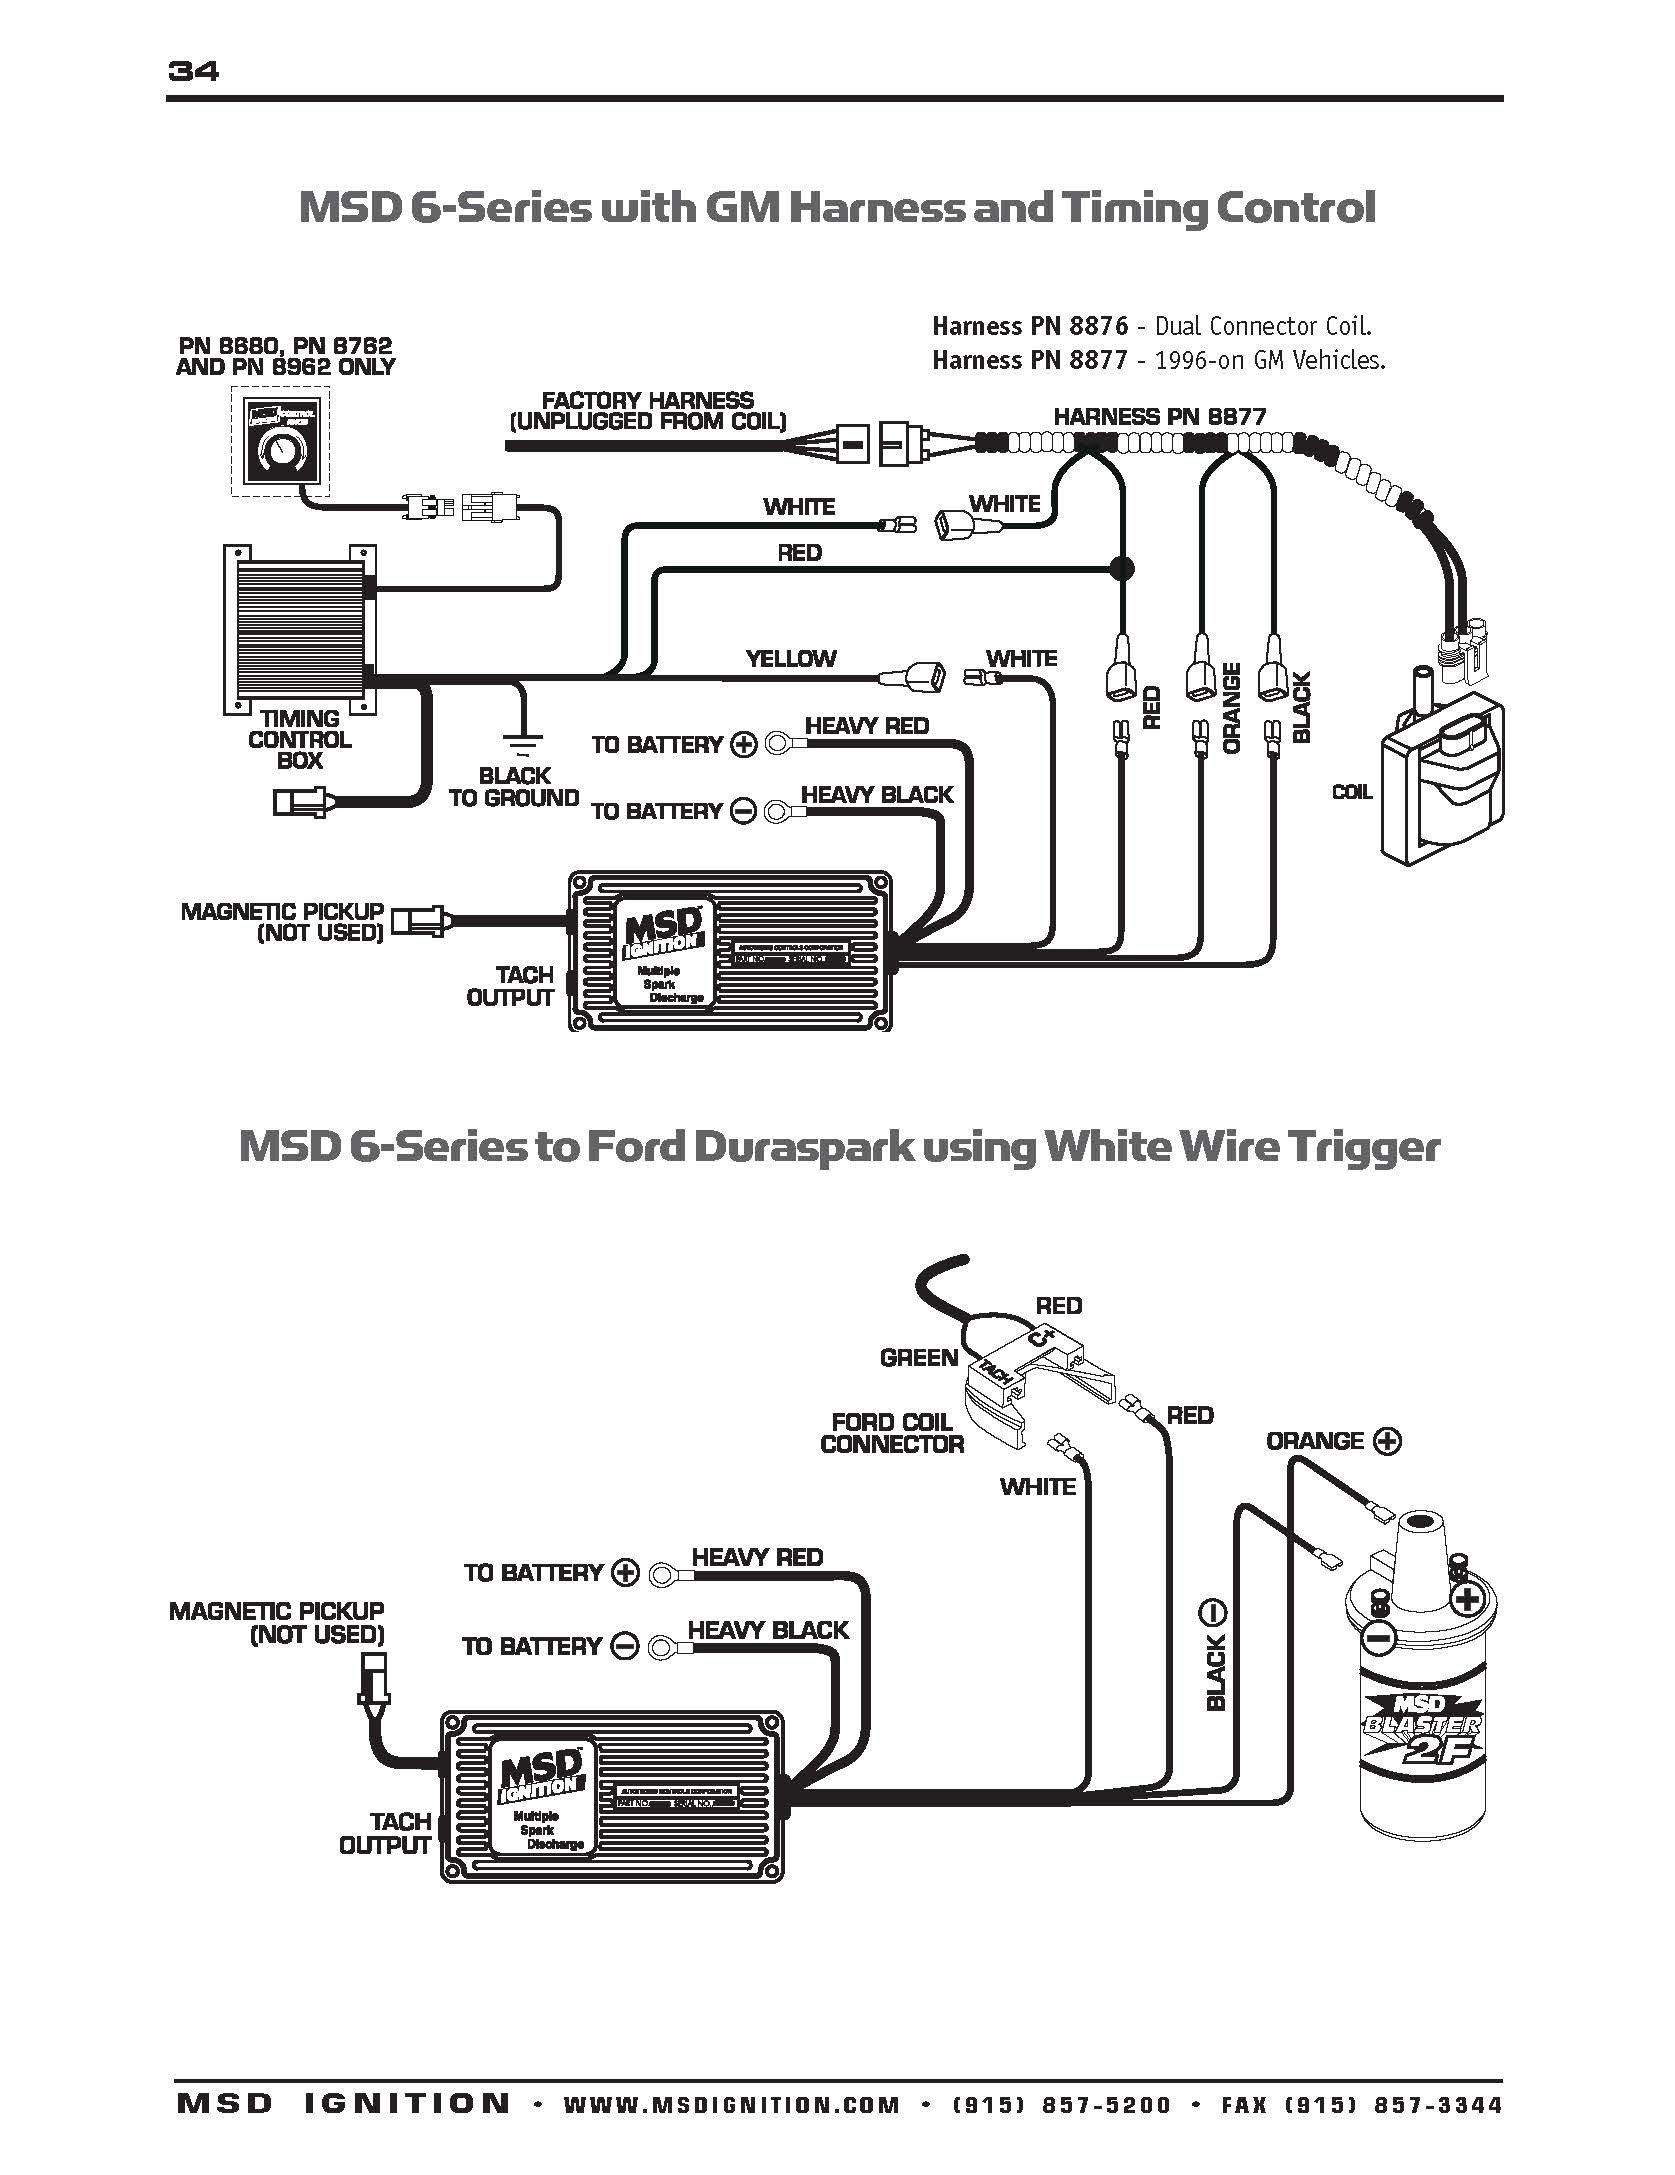 Mallory Ignition Coil Wiring Diagram on basic car electrical system diagram, electronic ignition diagram, mallory high fire wiring-diagram, inboard outboard motor diagram, mallory dist wiring-diagram, omc ignition switch diagram, mallory carburetor diagram, fairbanks morse magneto diagram, atwood rv water heater diagram, msd 6al diagram,